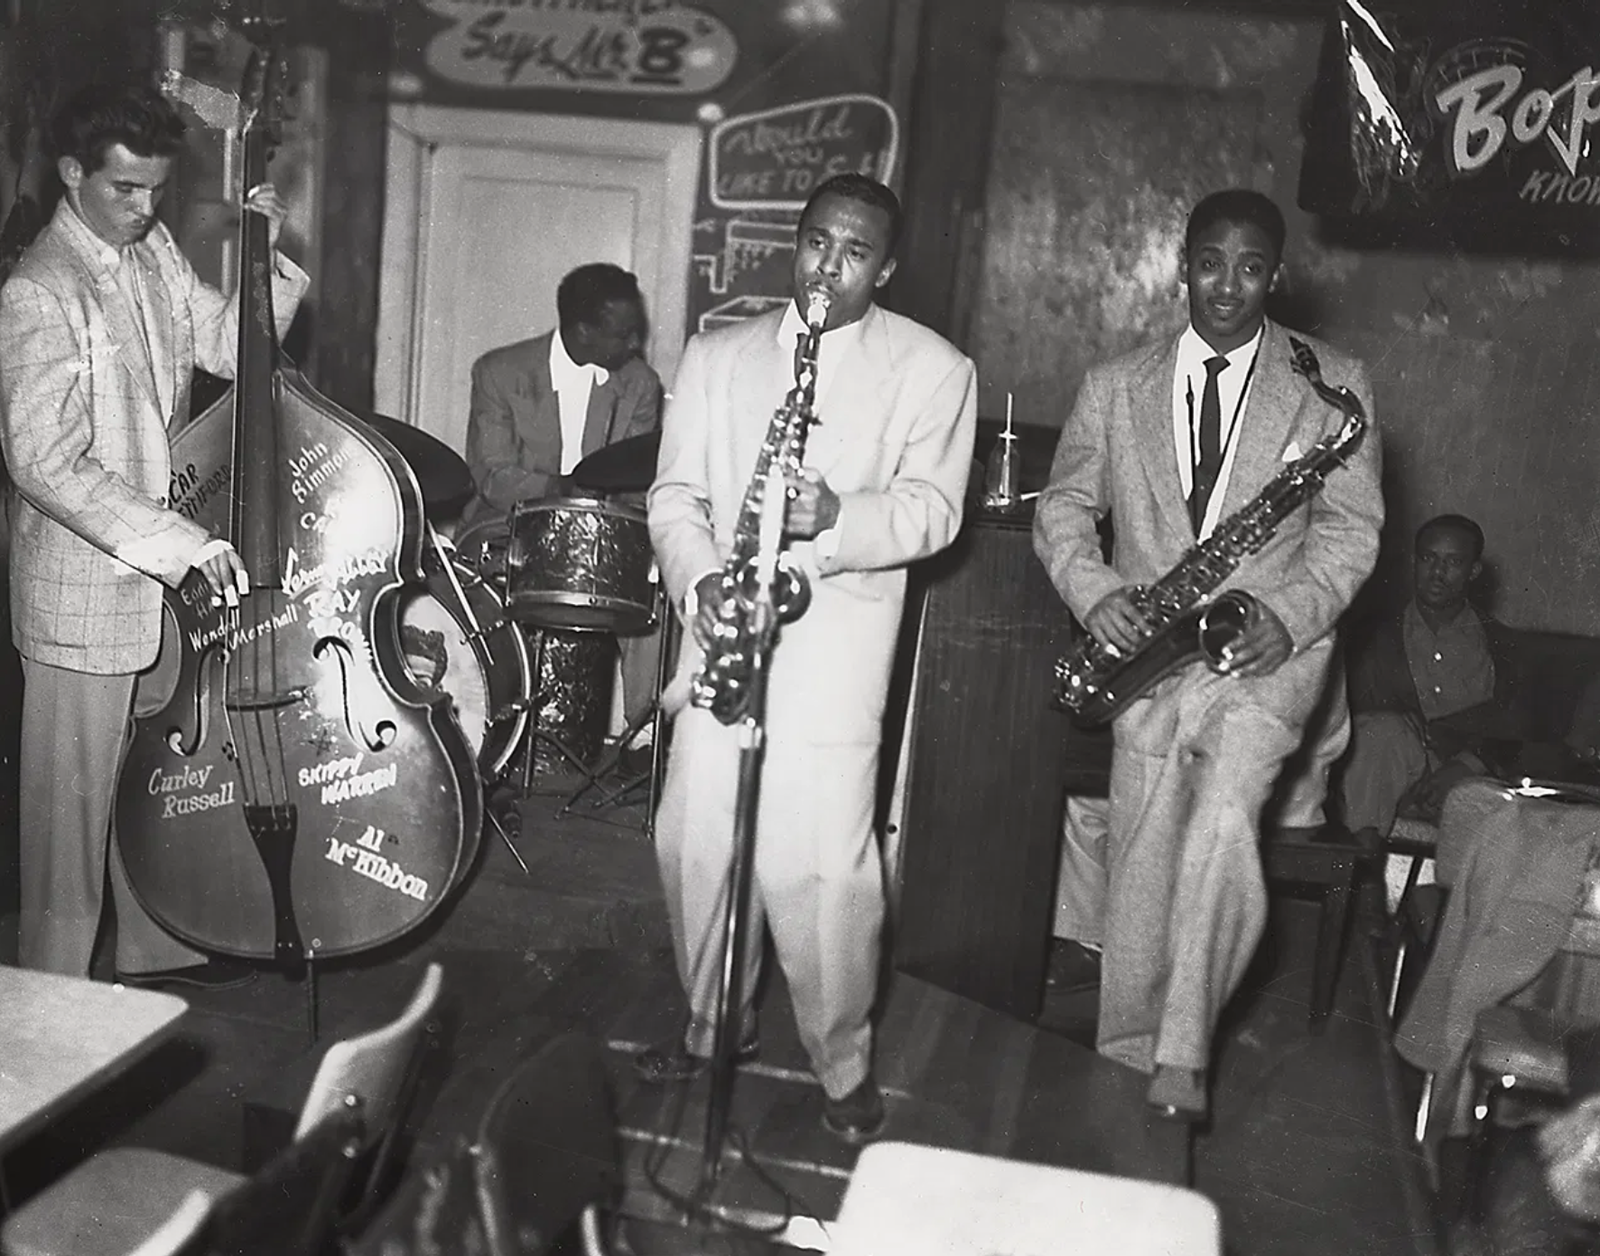 A late night jam session at Bop City, mid 1950s. Steve Jackson Jr.